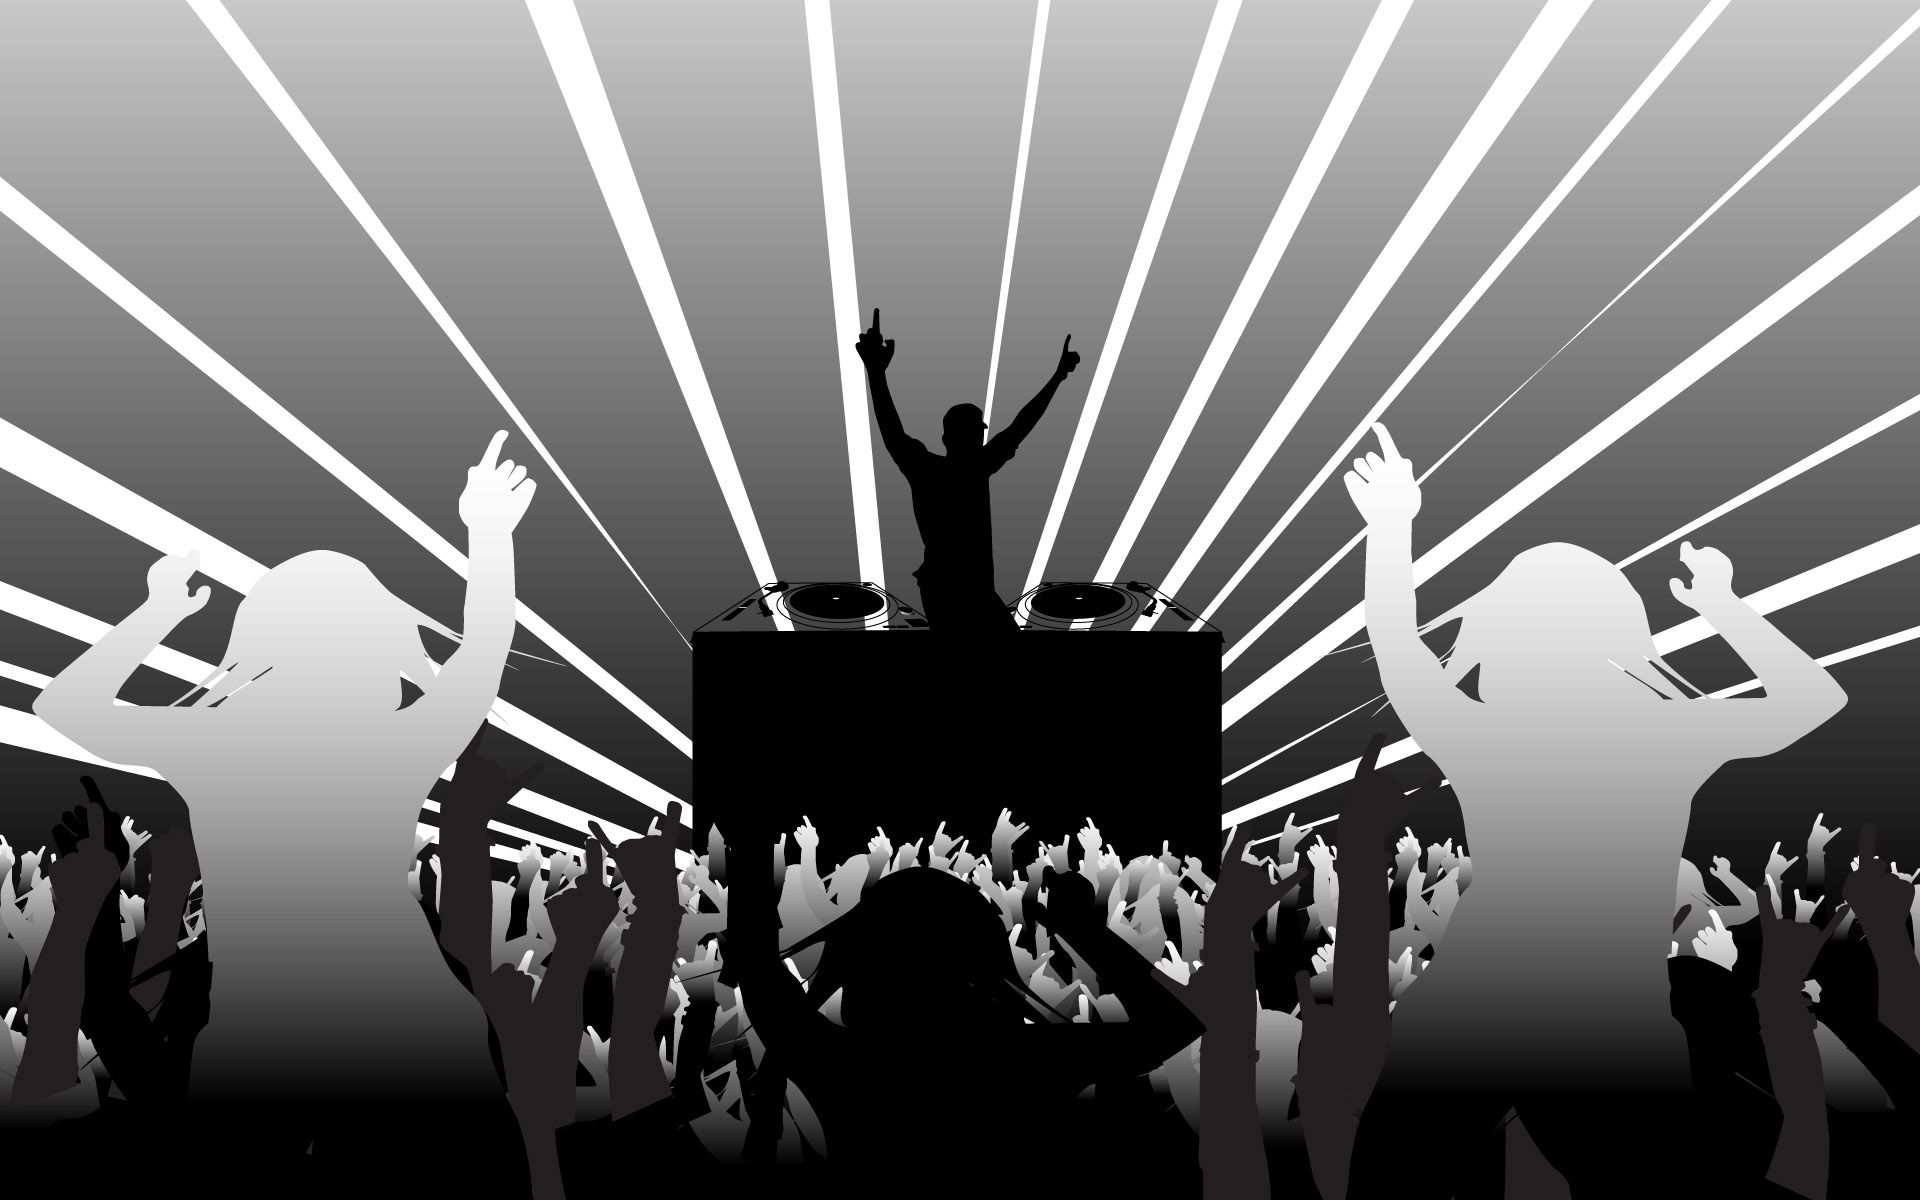 Cool Party Backgrounds - WallpaperSafari